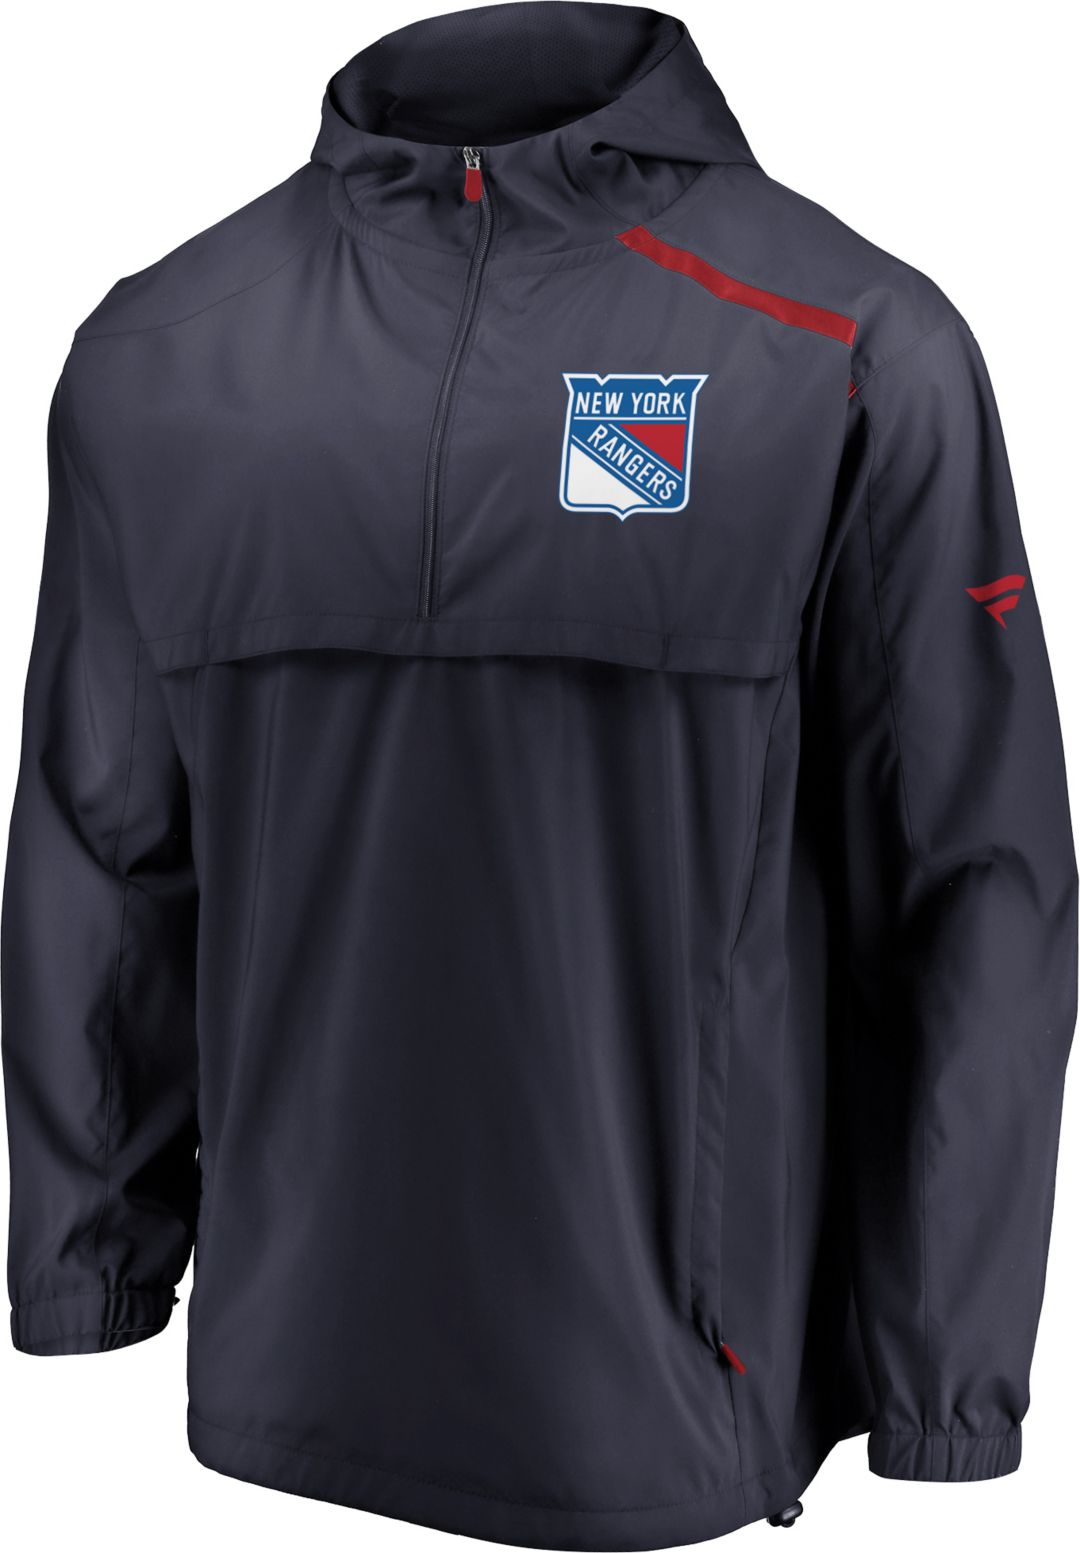 2cc2f677 NHL Men's New York Rangers Authentic Pro Navy Anorak Jacket | DICK'S ...